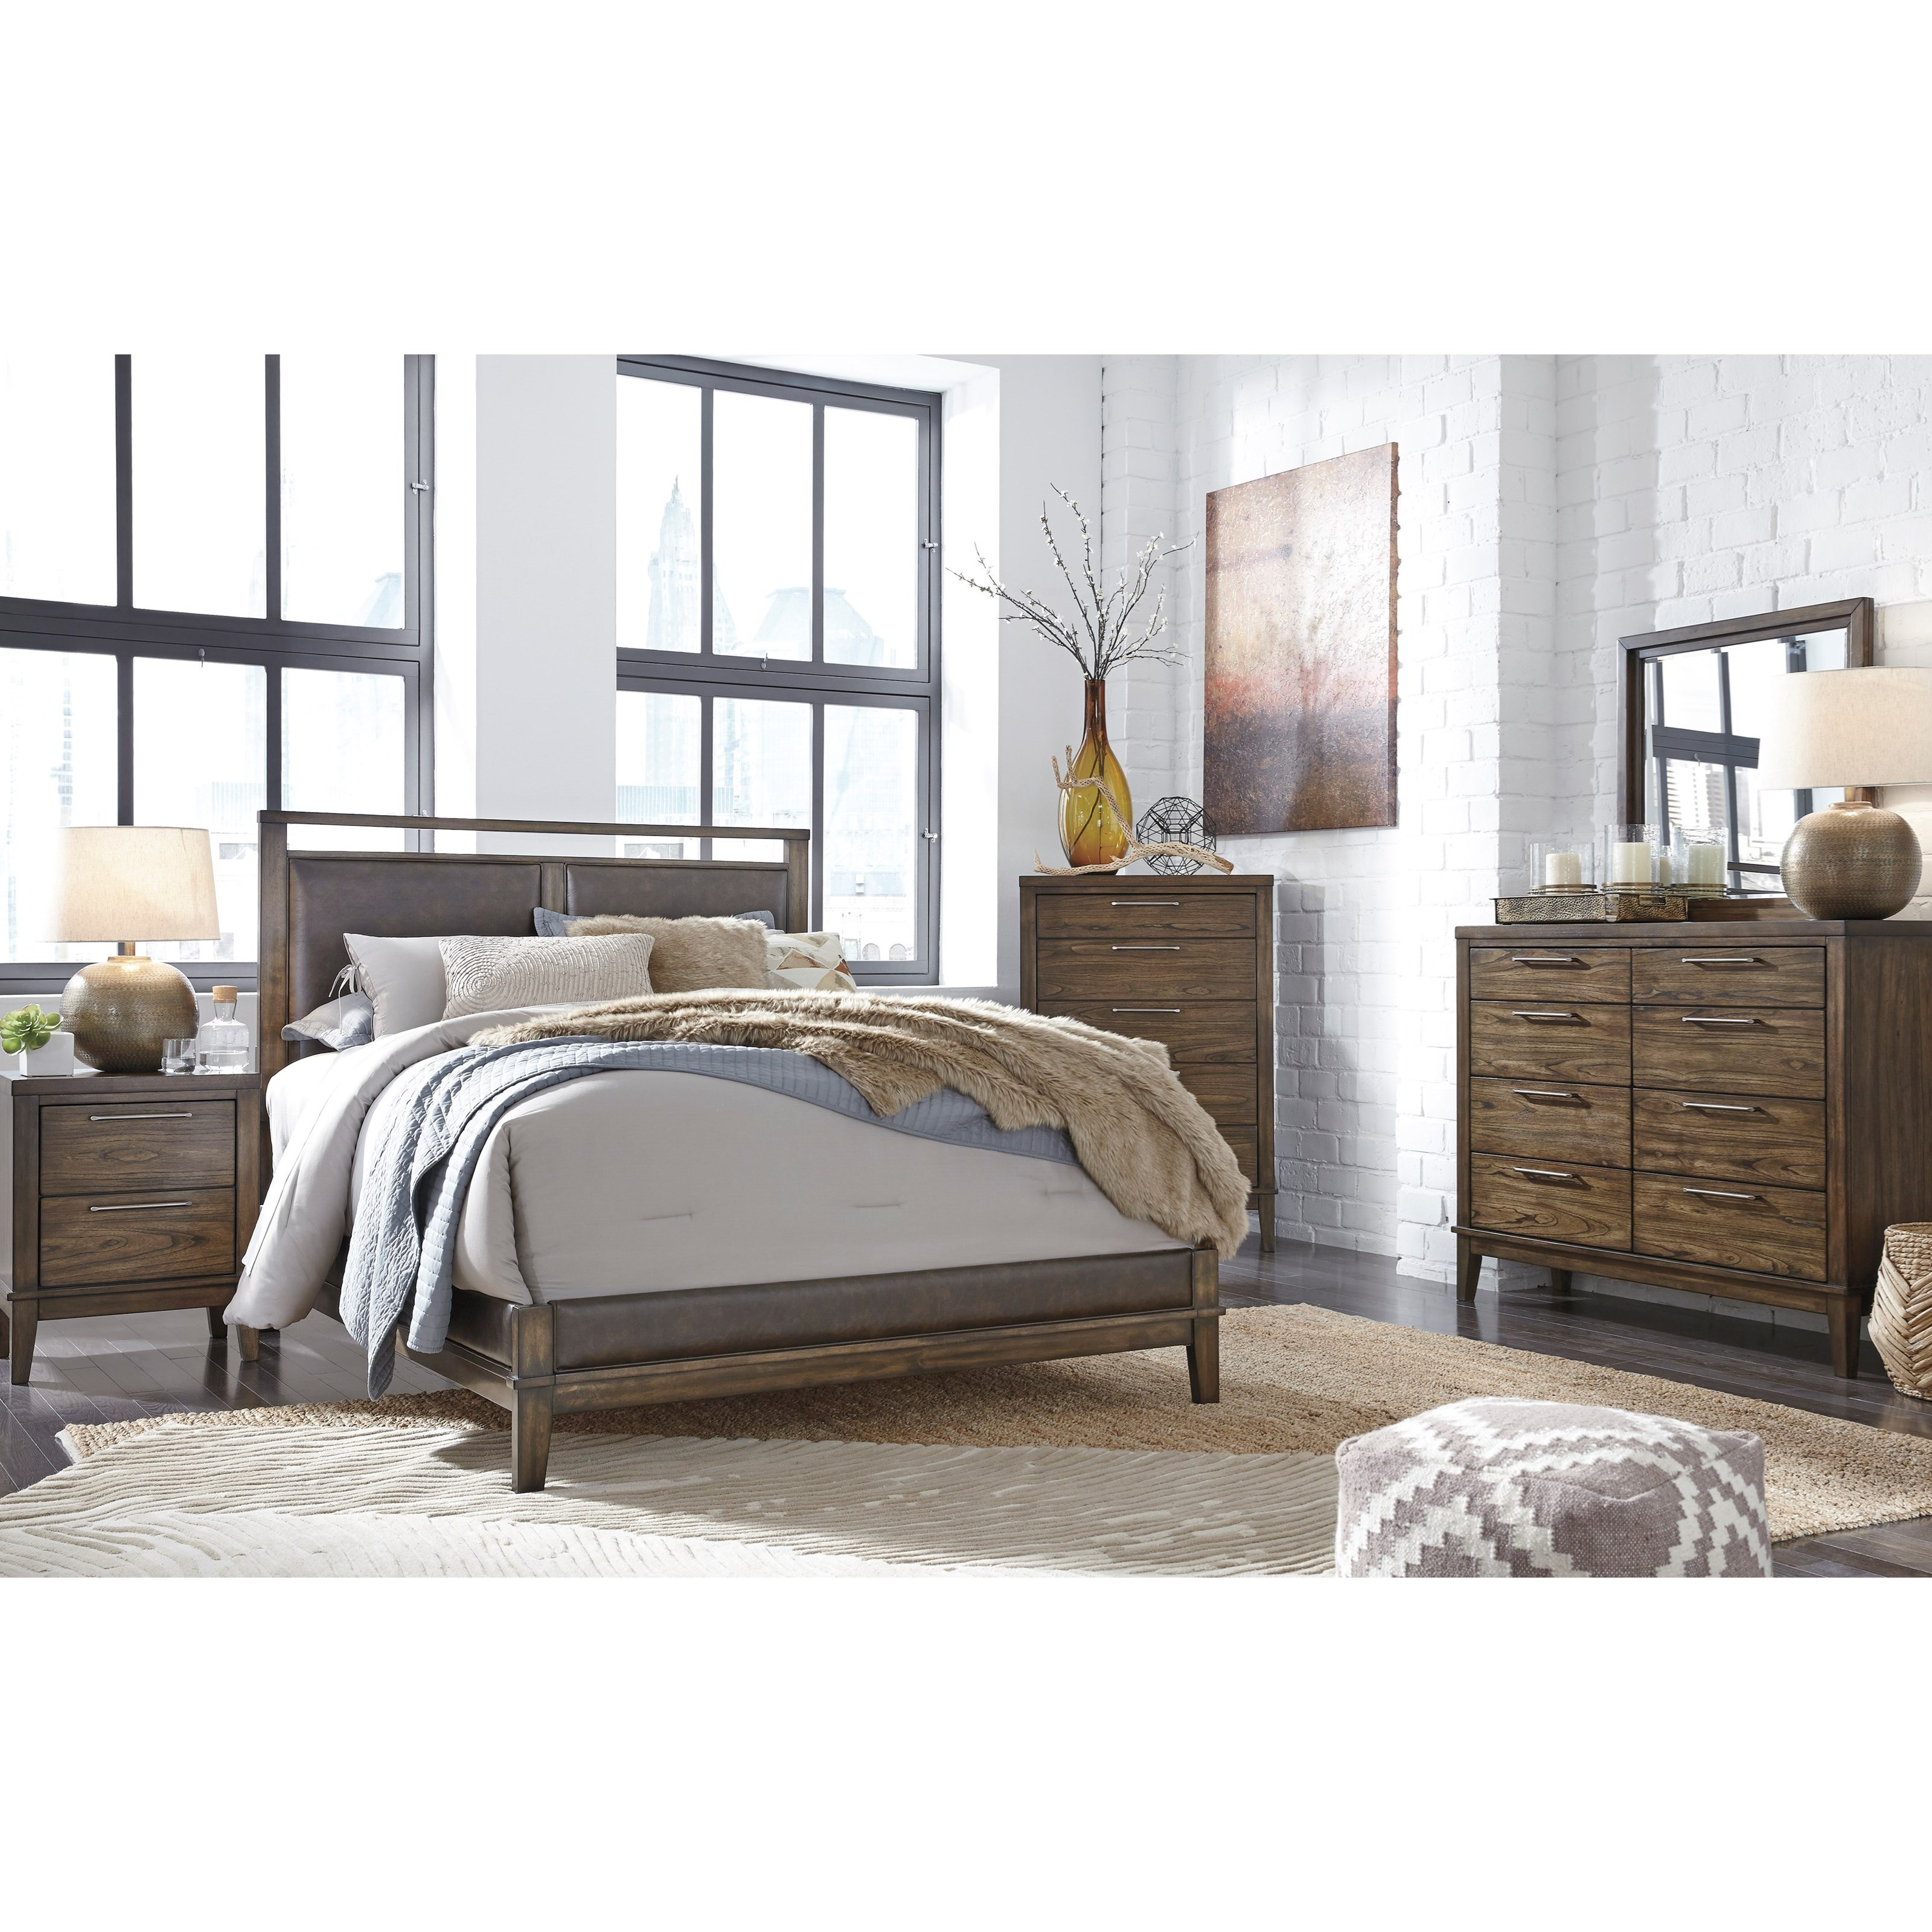 Signature design by ashley zilmar queen bedroom group for Bedroom furniture groups